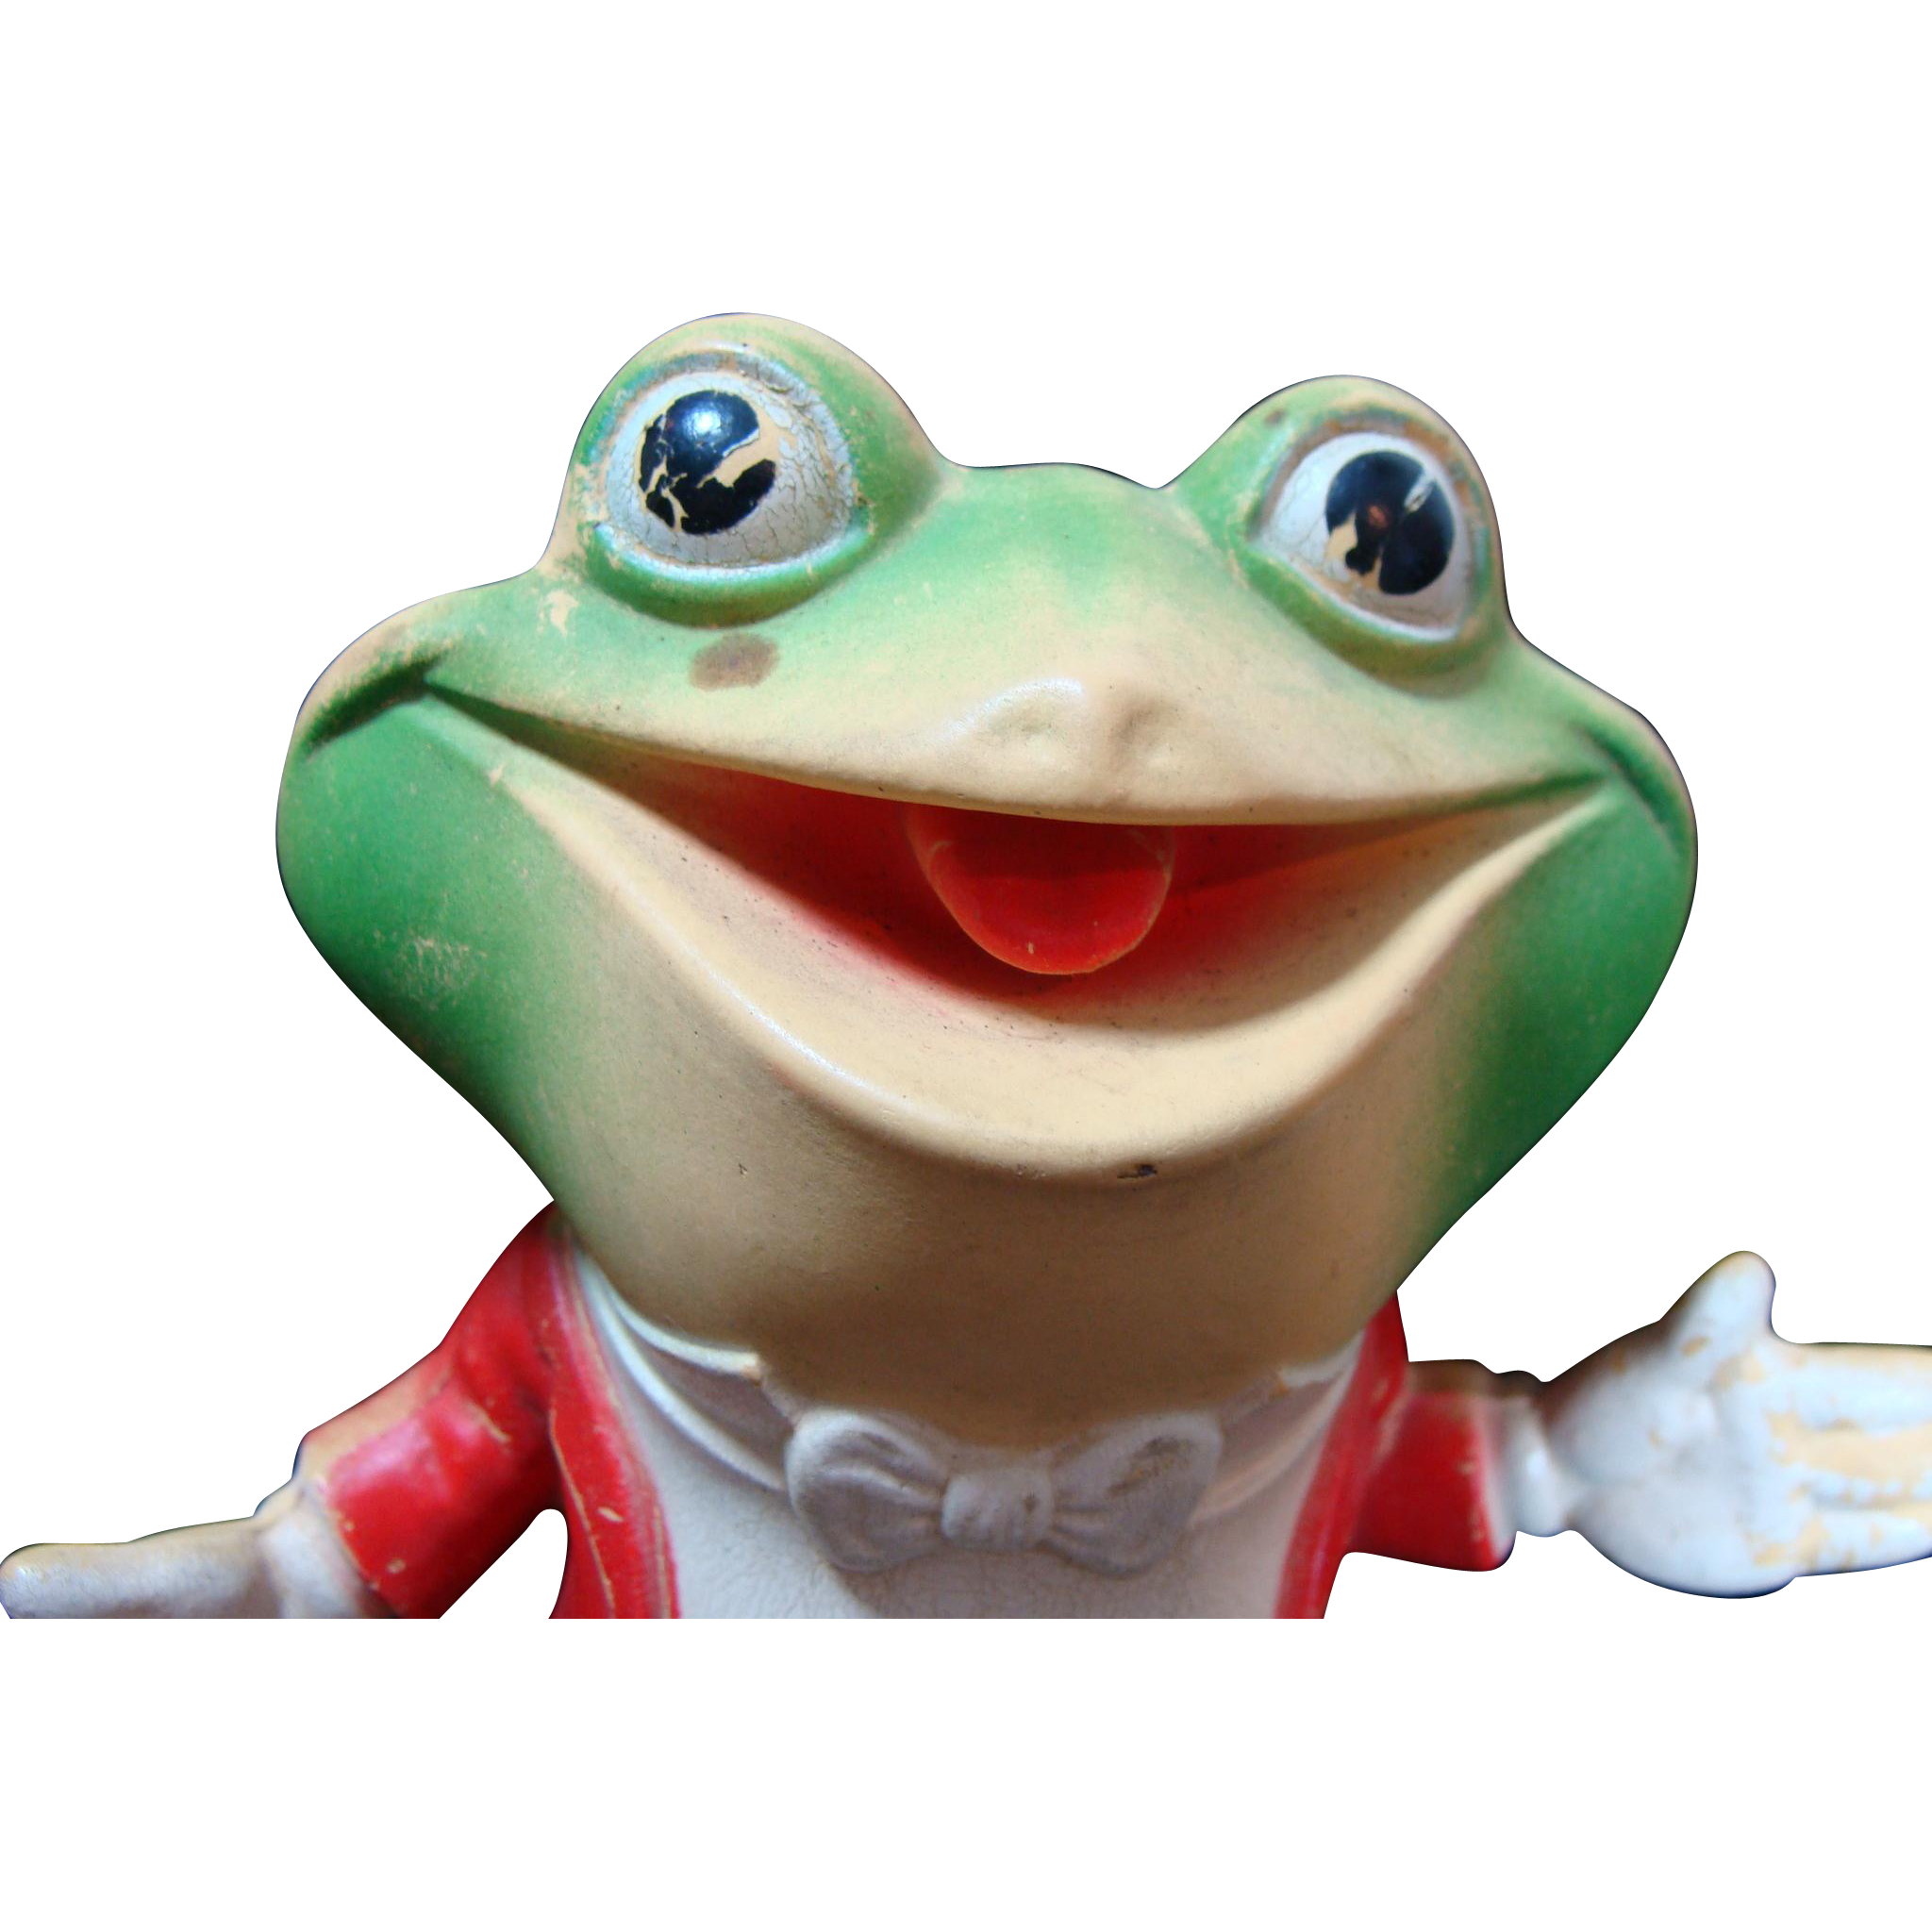 Original Rempel Froggy The Gremlin Squeak Toy/Doll